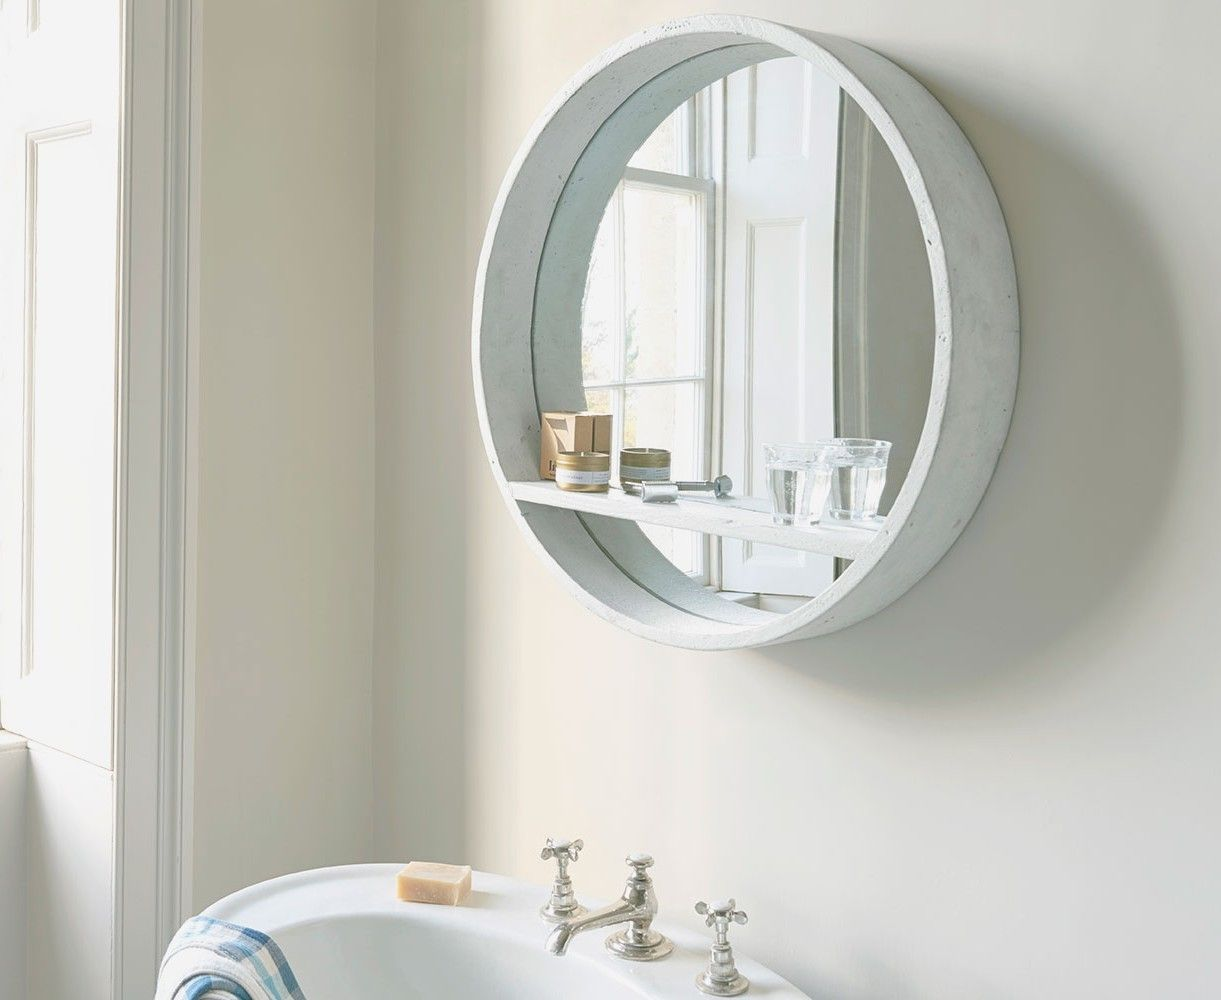 Black And White Encaustic Look Tiles Dulux Domino Vanity Leather And Brass Handles Timber Round Mirror Black In 2020 Round Mirror Bathroom Bathroom Mirror Bathroom